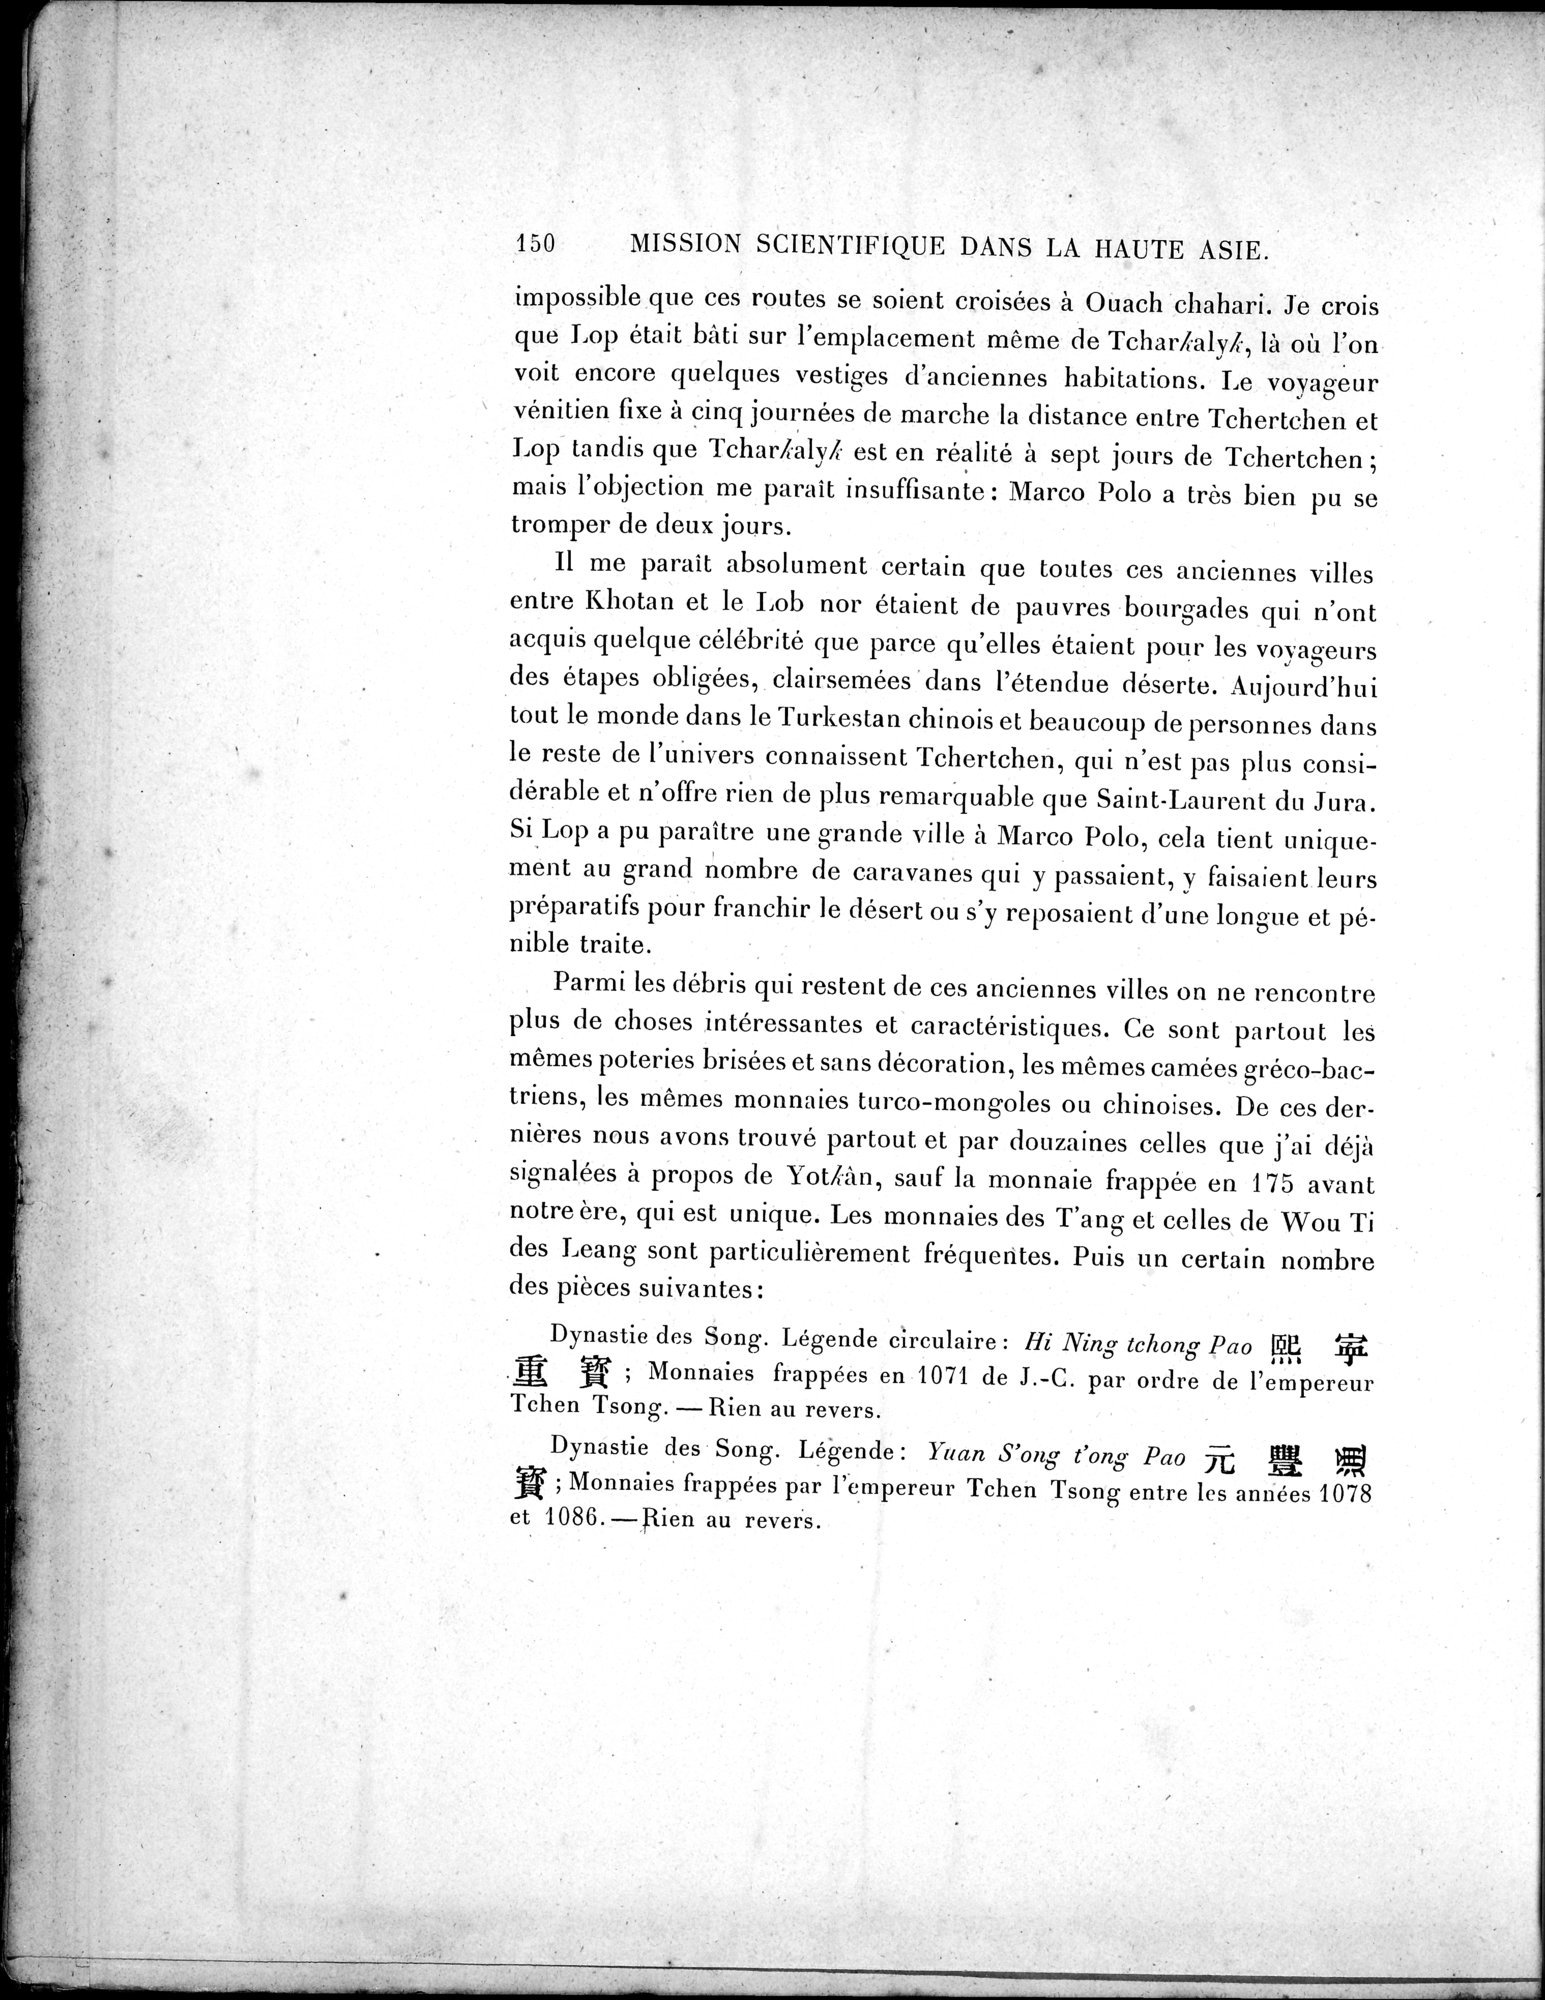 Mission Scientifique dans la Haute Asie 1890-1895 : vol.3 / Page 166 (Grayscale High Resolution Image)